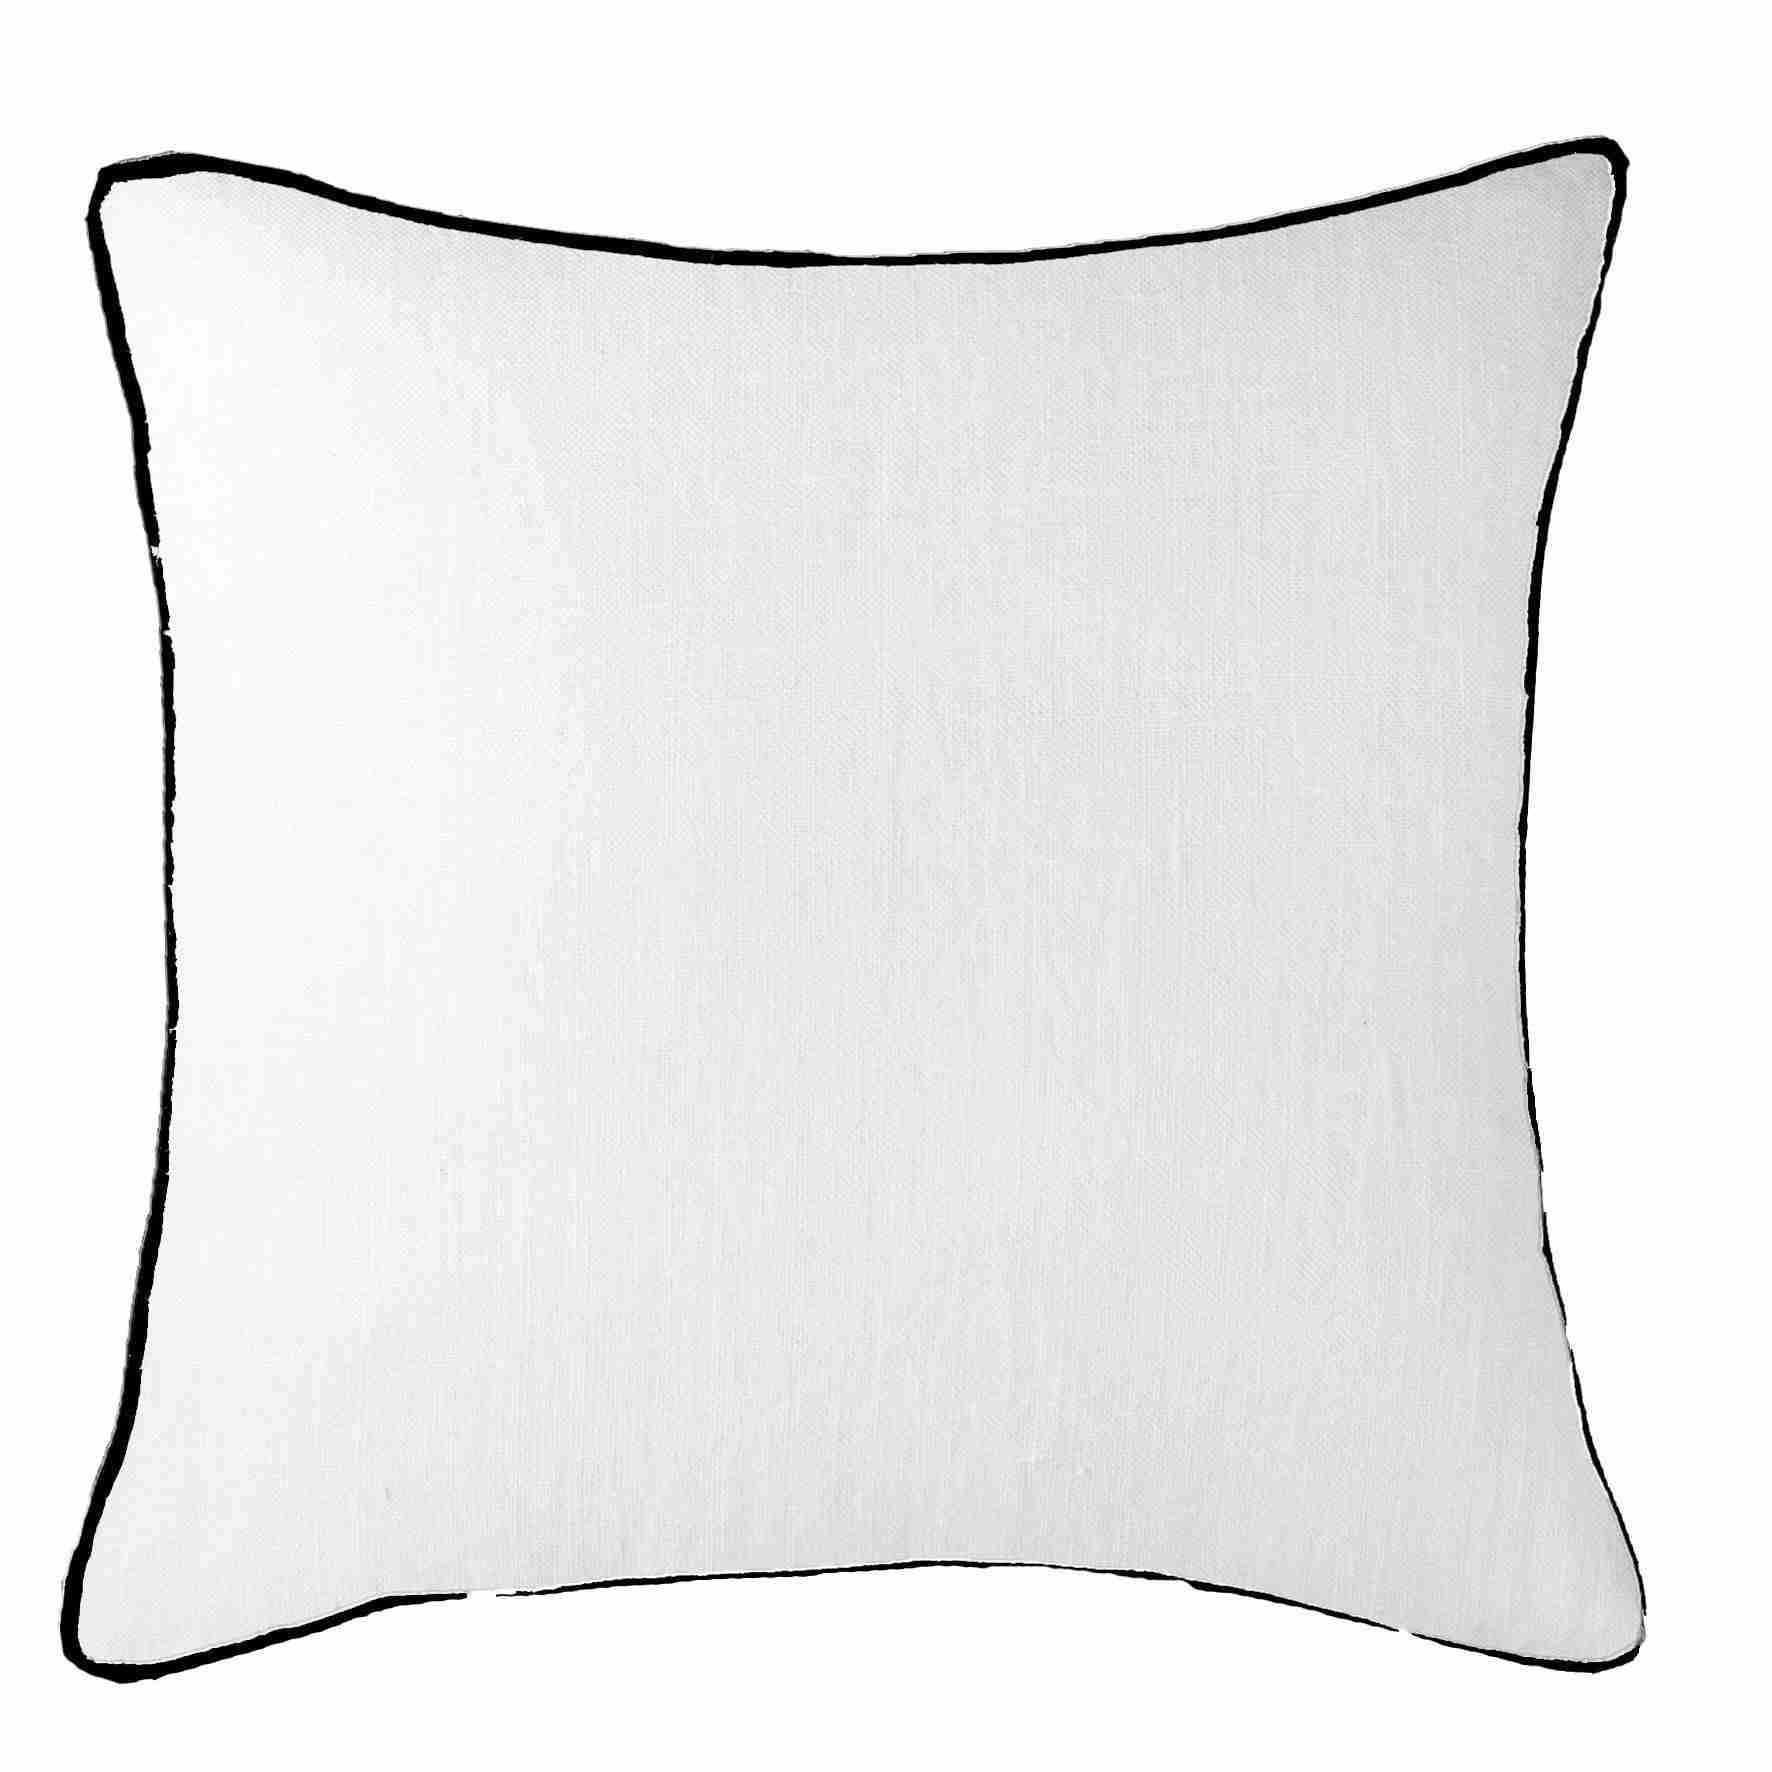 Bandhini Homewear Design Lounge Cushion White / 22 x 22 Piped Linen White with Black Piping Lounge Cushion 55 x 55 cm